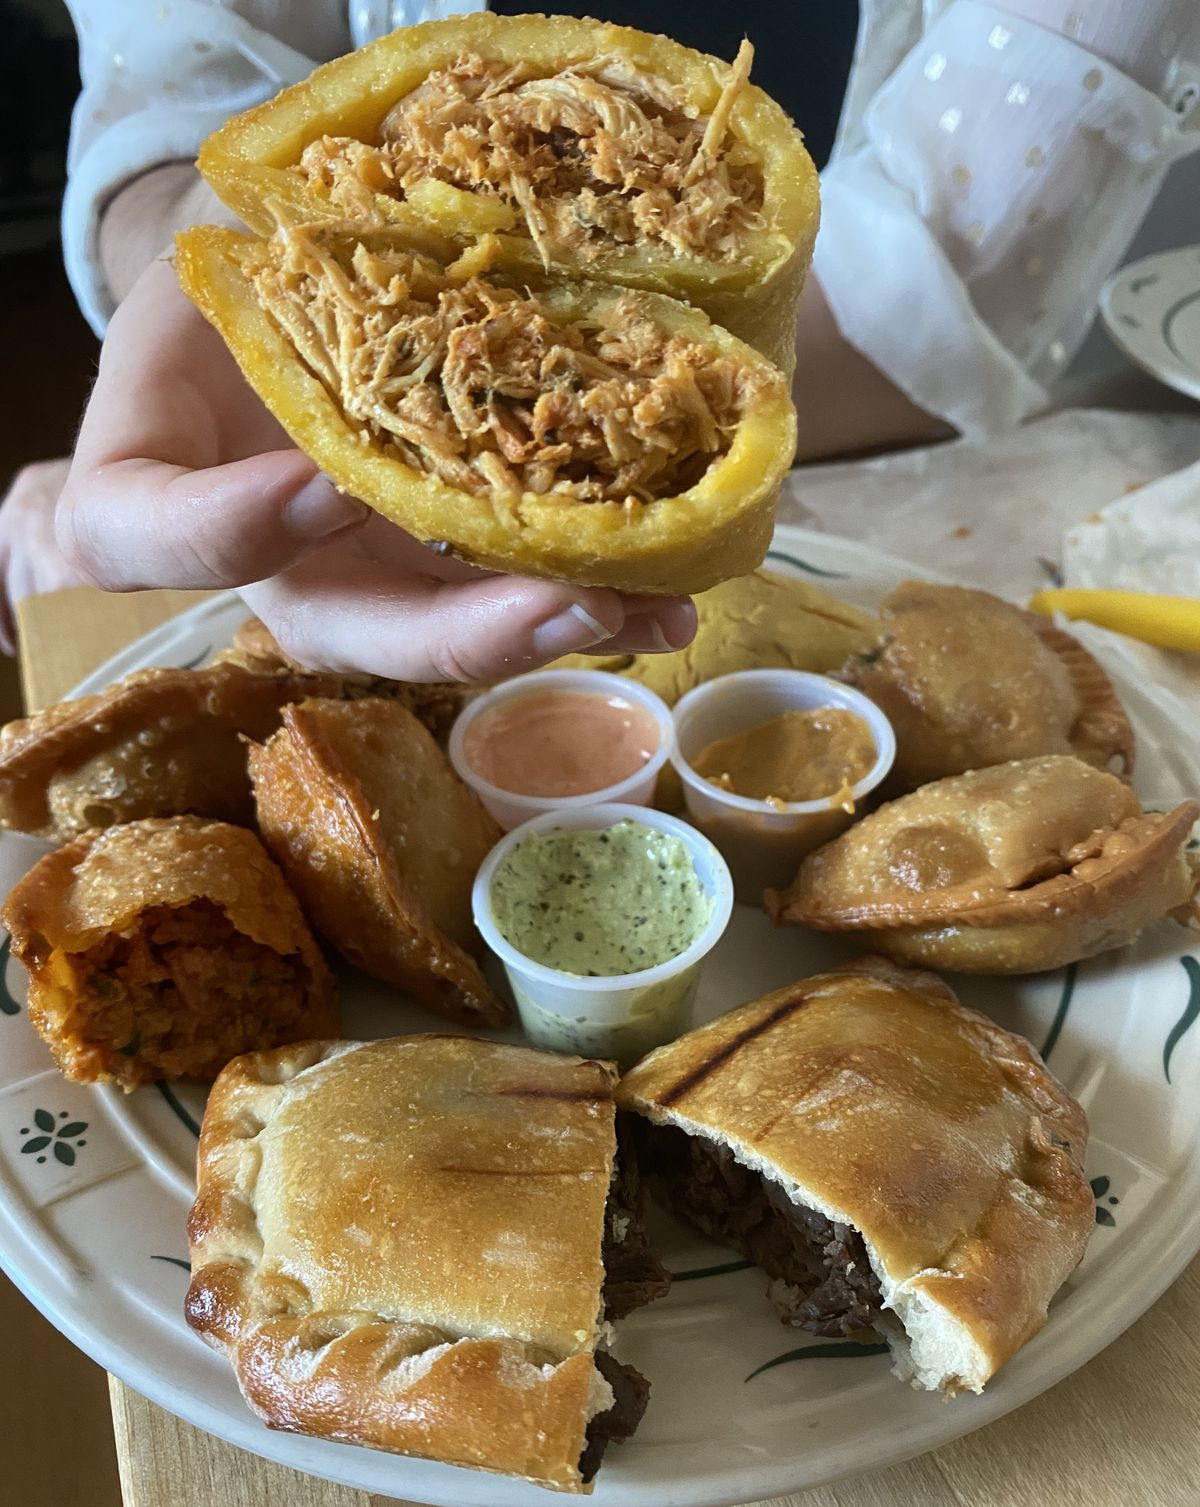 Six empanadas cut in half and displayed on a white plate with green designs on the edge. A person is holding one empanada up to the camera